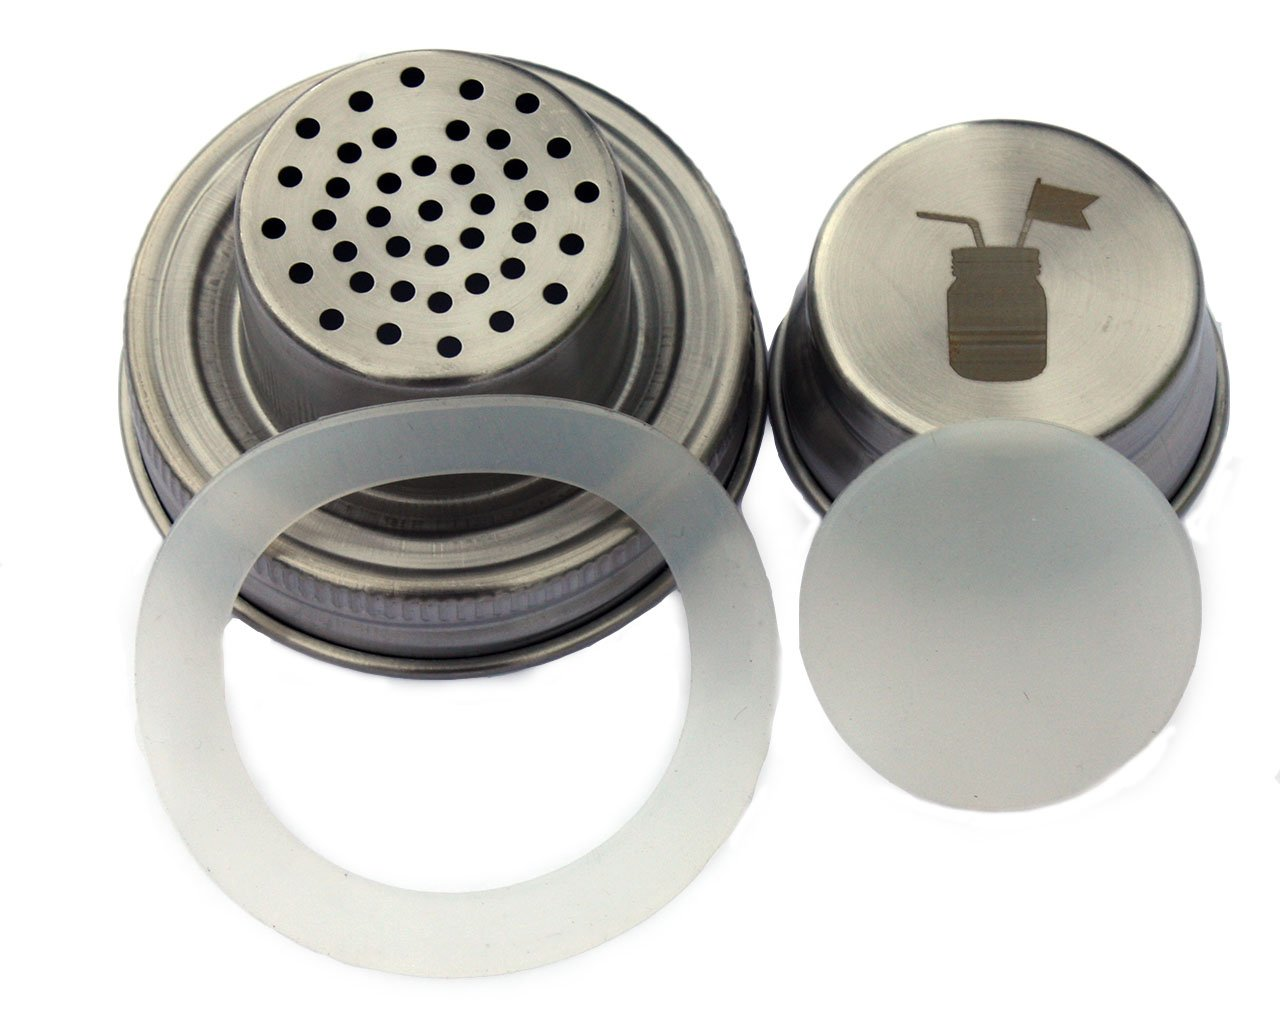 Ball Cocktail Shaker Lid with Silicone Seals for Regular Mouth Mason Canning Jars